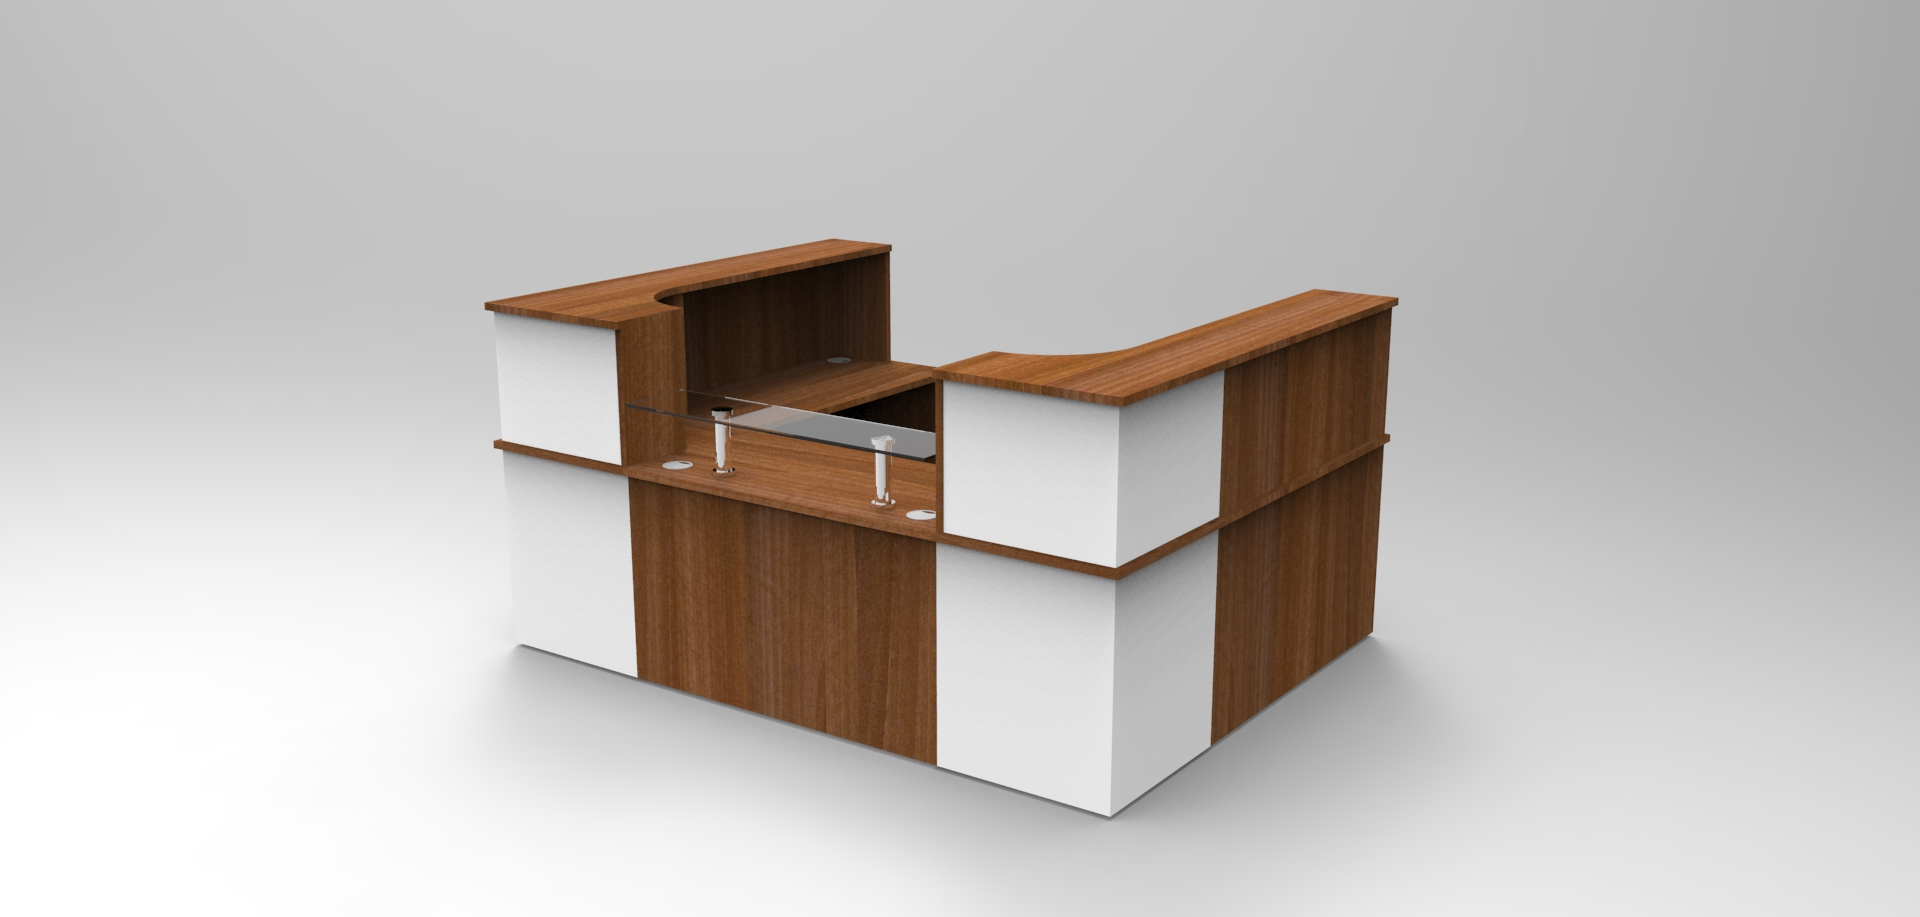 Image 23C -Single Classic reception desk finished in Walnut and White